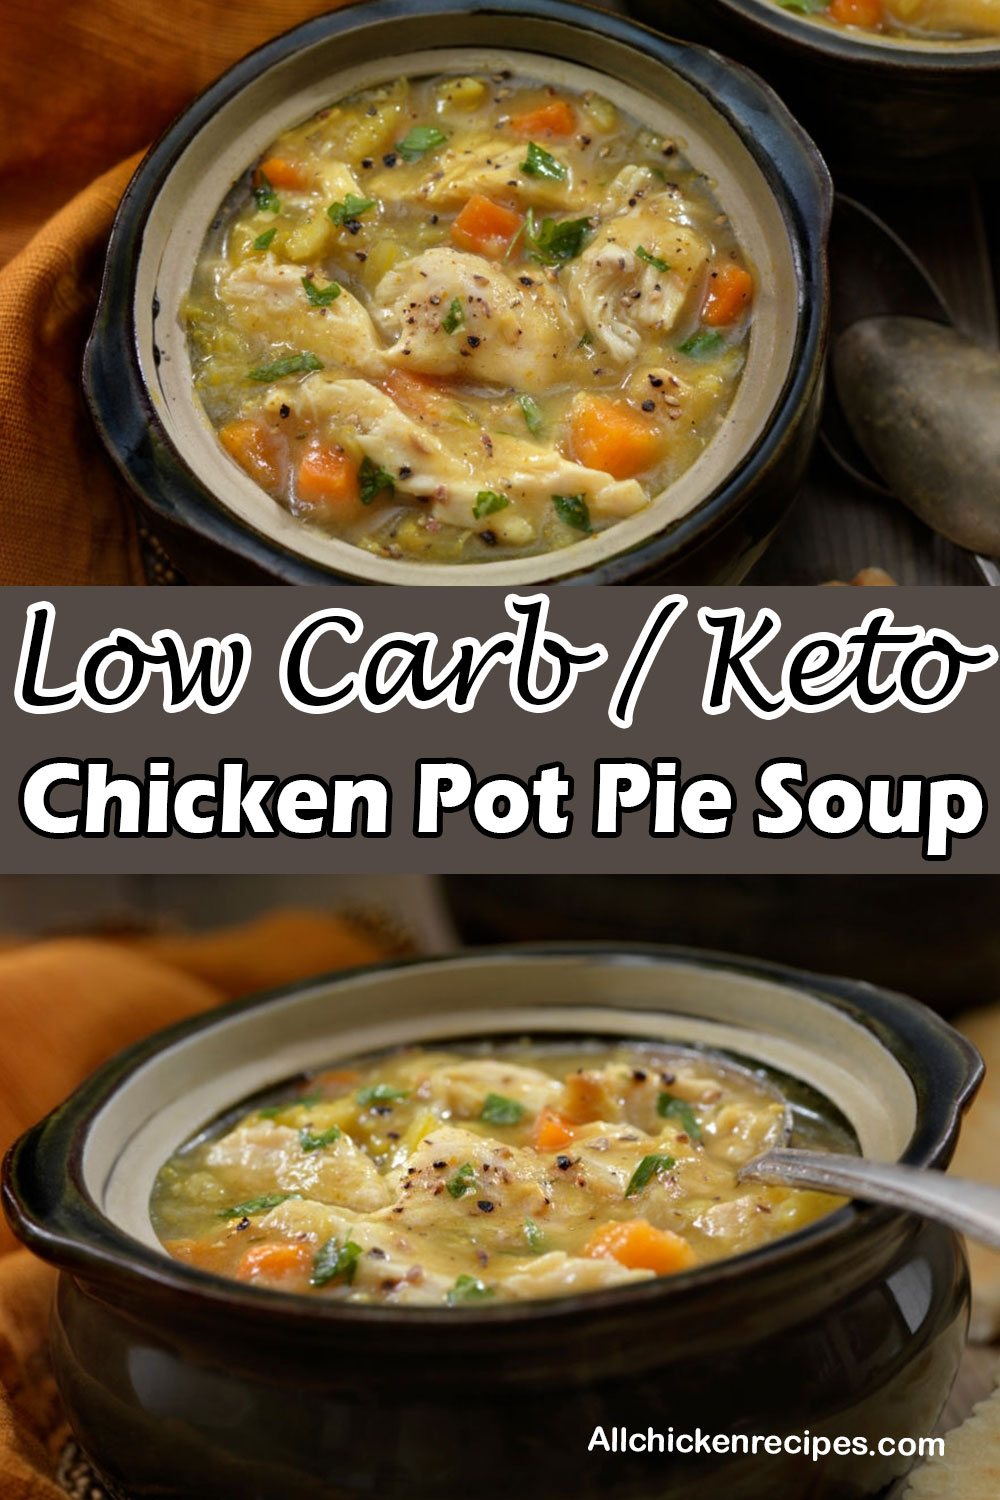 Low Carb Keto Chicken Pot Pie Soup